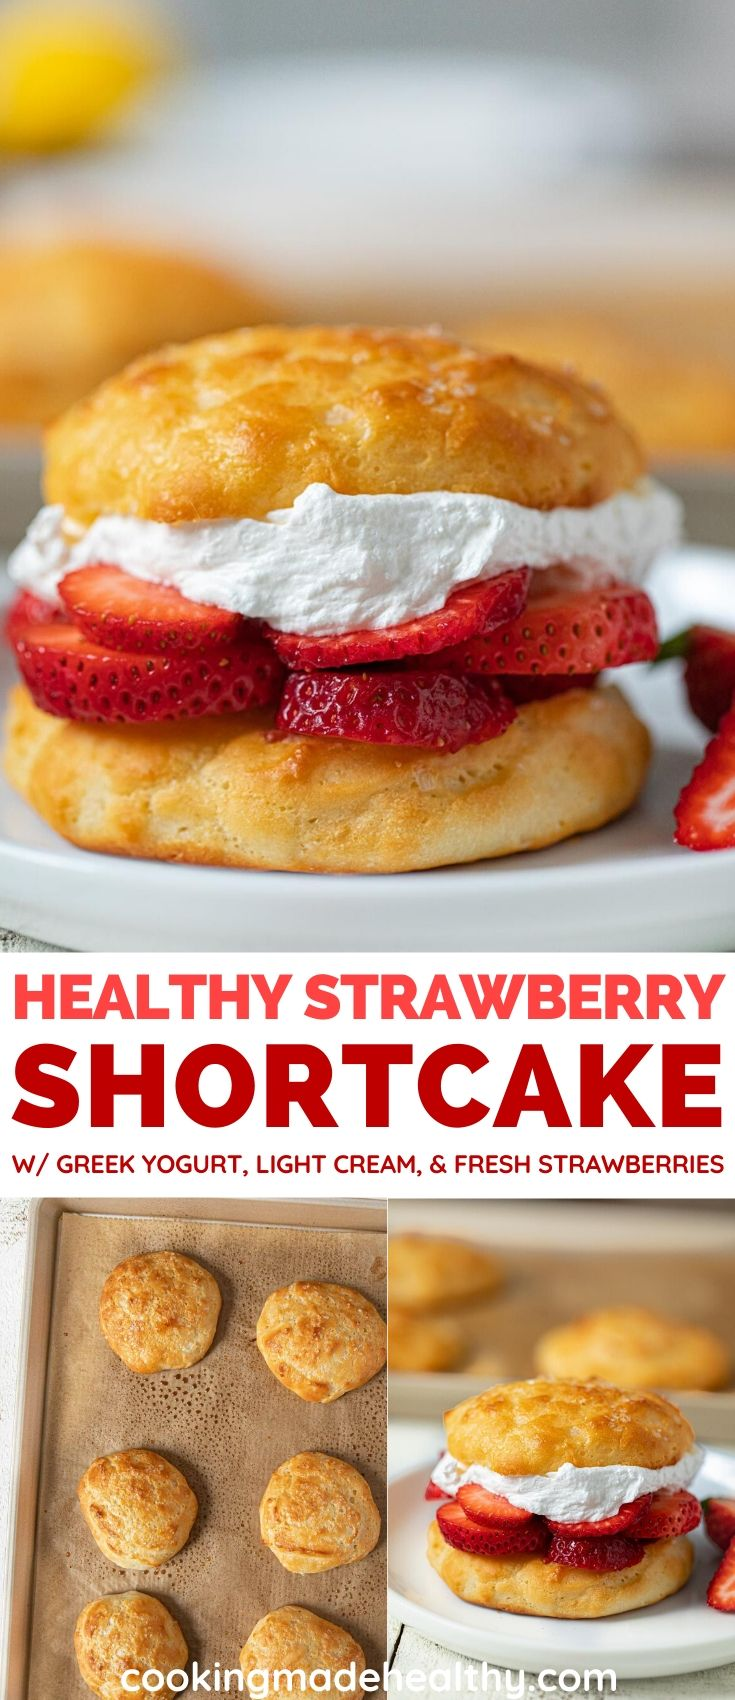 Healthy Strawberry Shortcake Collage